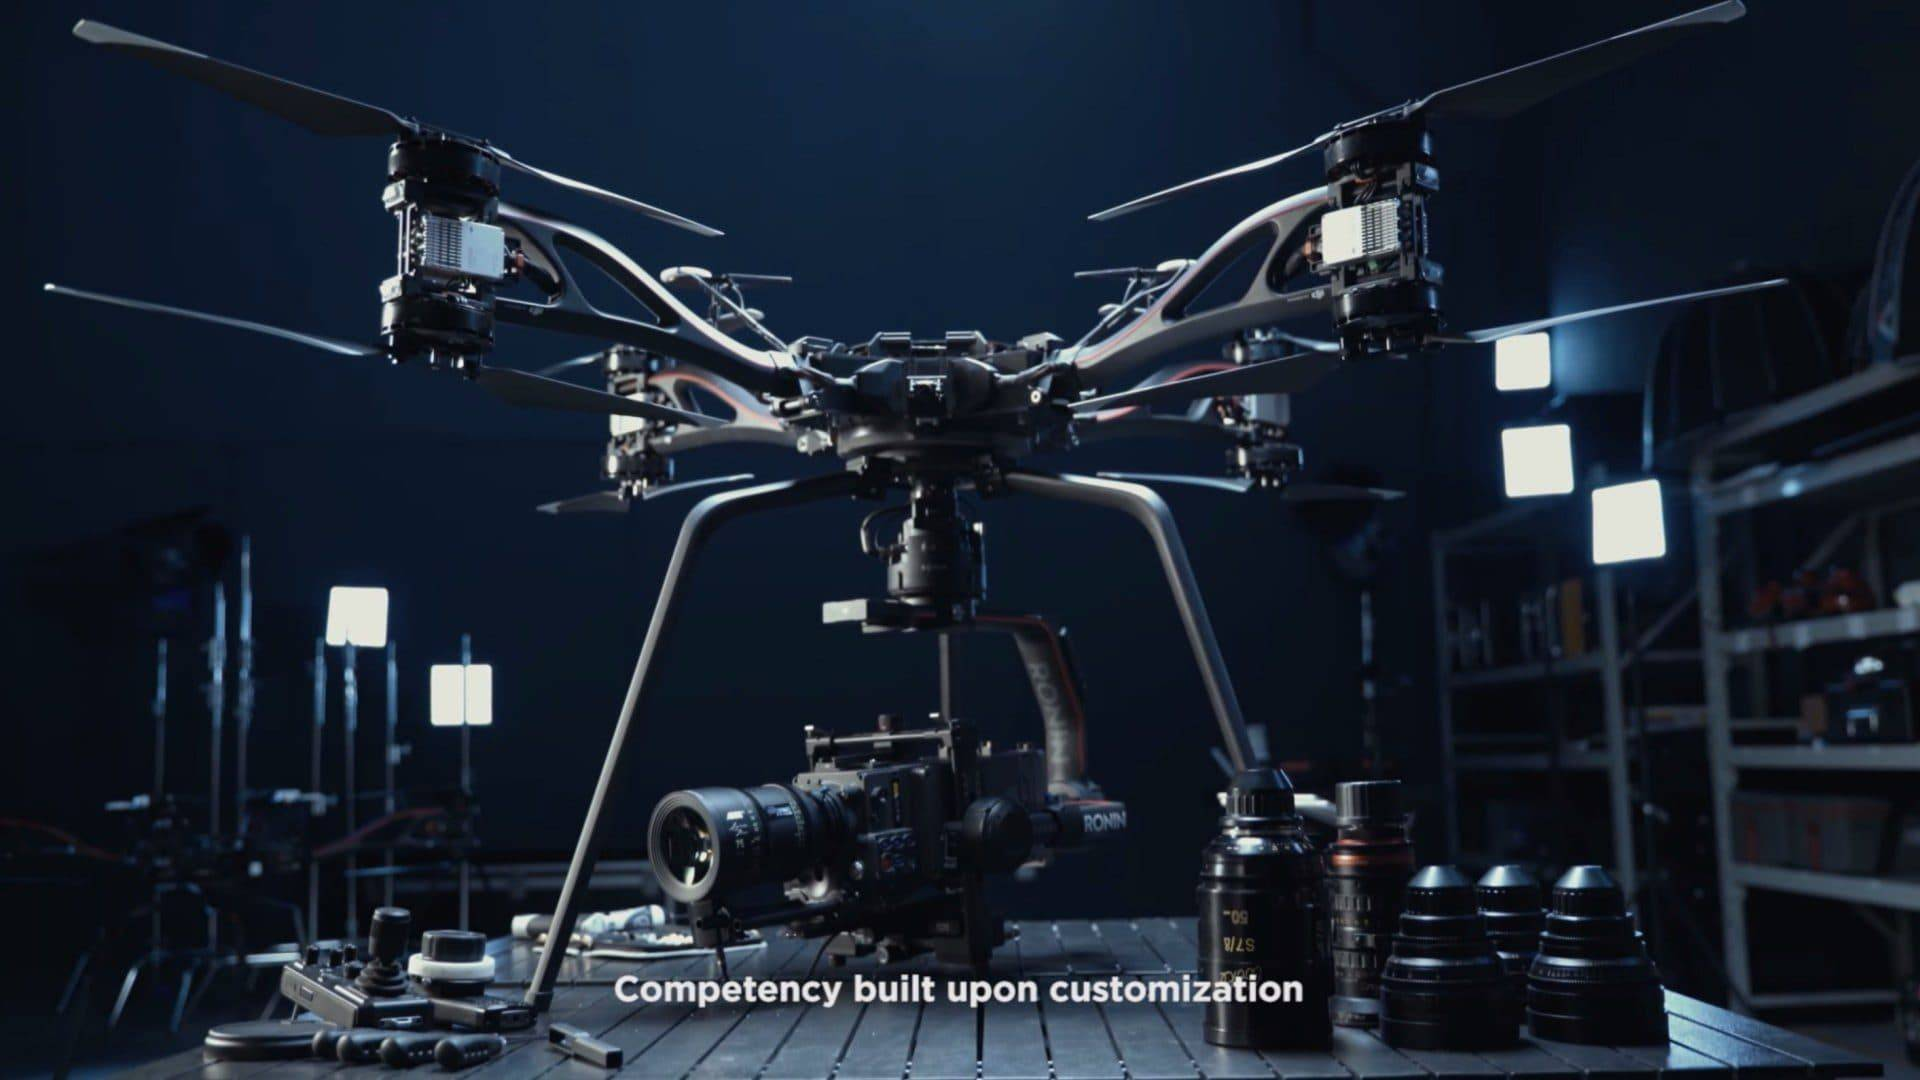 The DJI Storm can hold up to 41 pounds